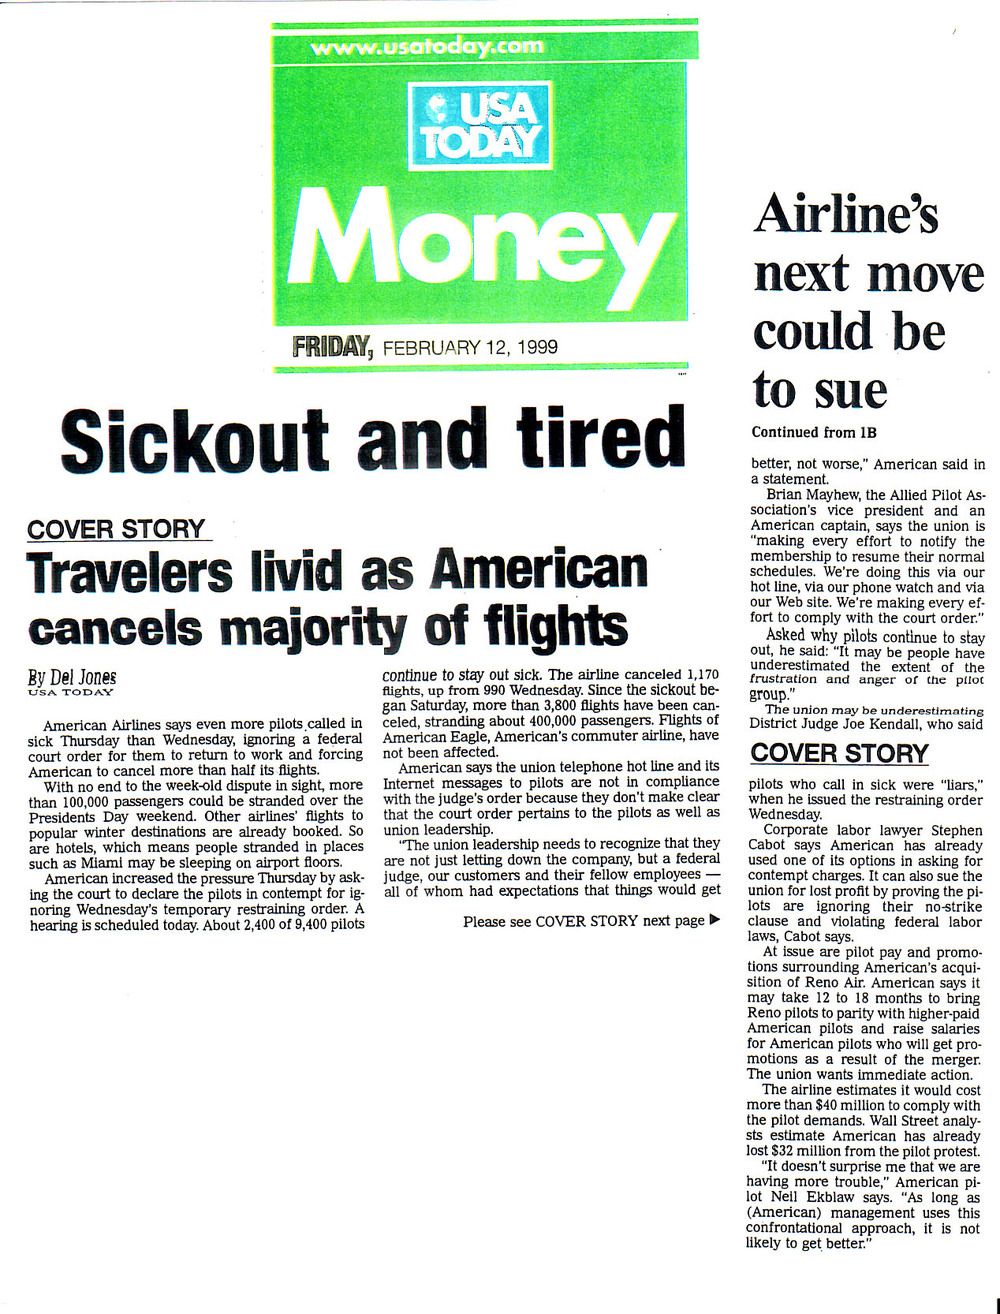 usa today-february 12, 1999-travelers livid as american cancels majority of flights.jpg